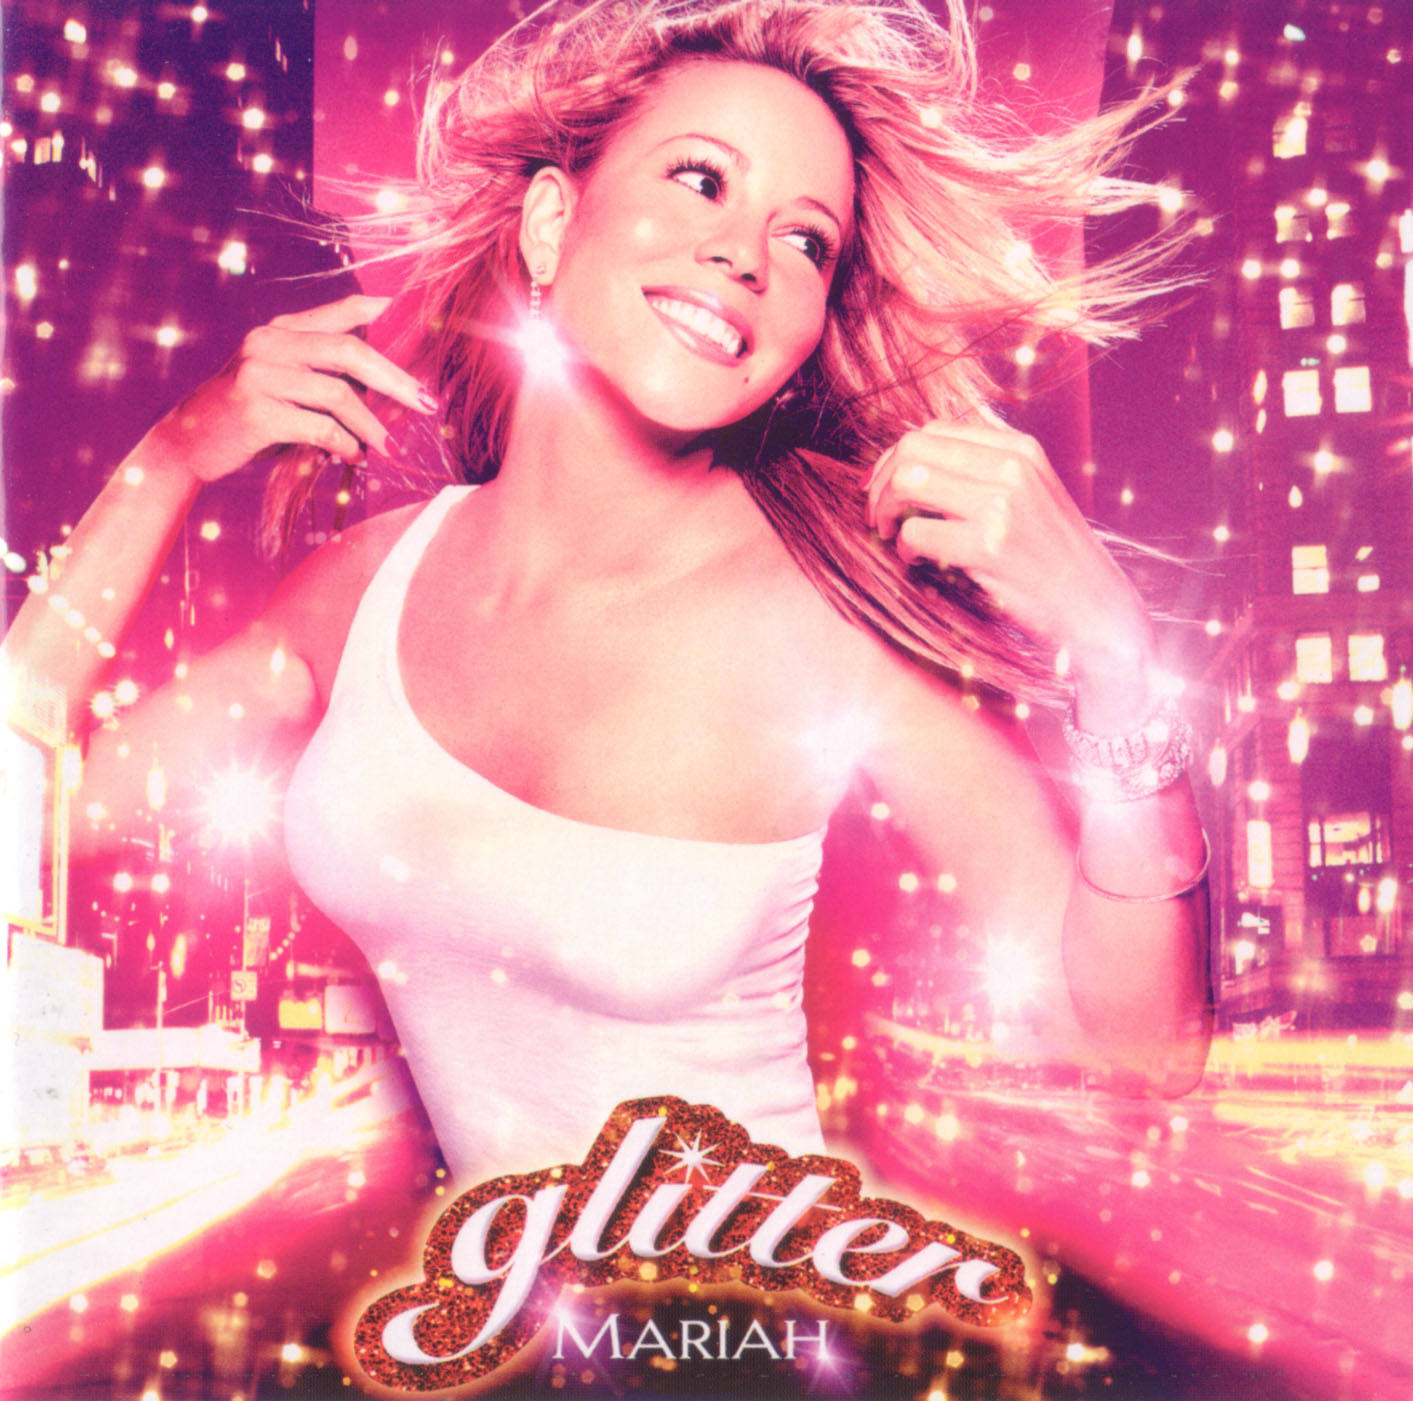 Did you like the movie Glitter Staring Mariah Carey?